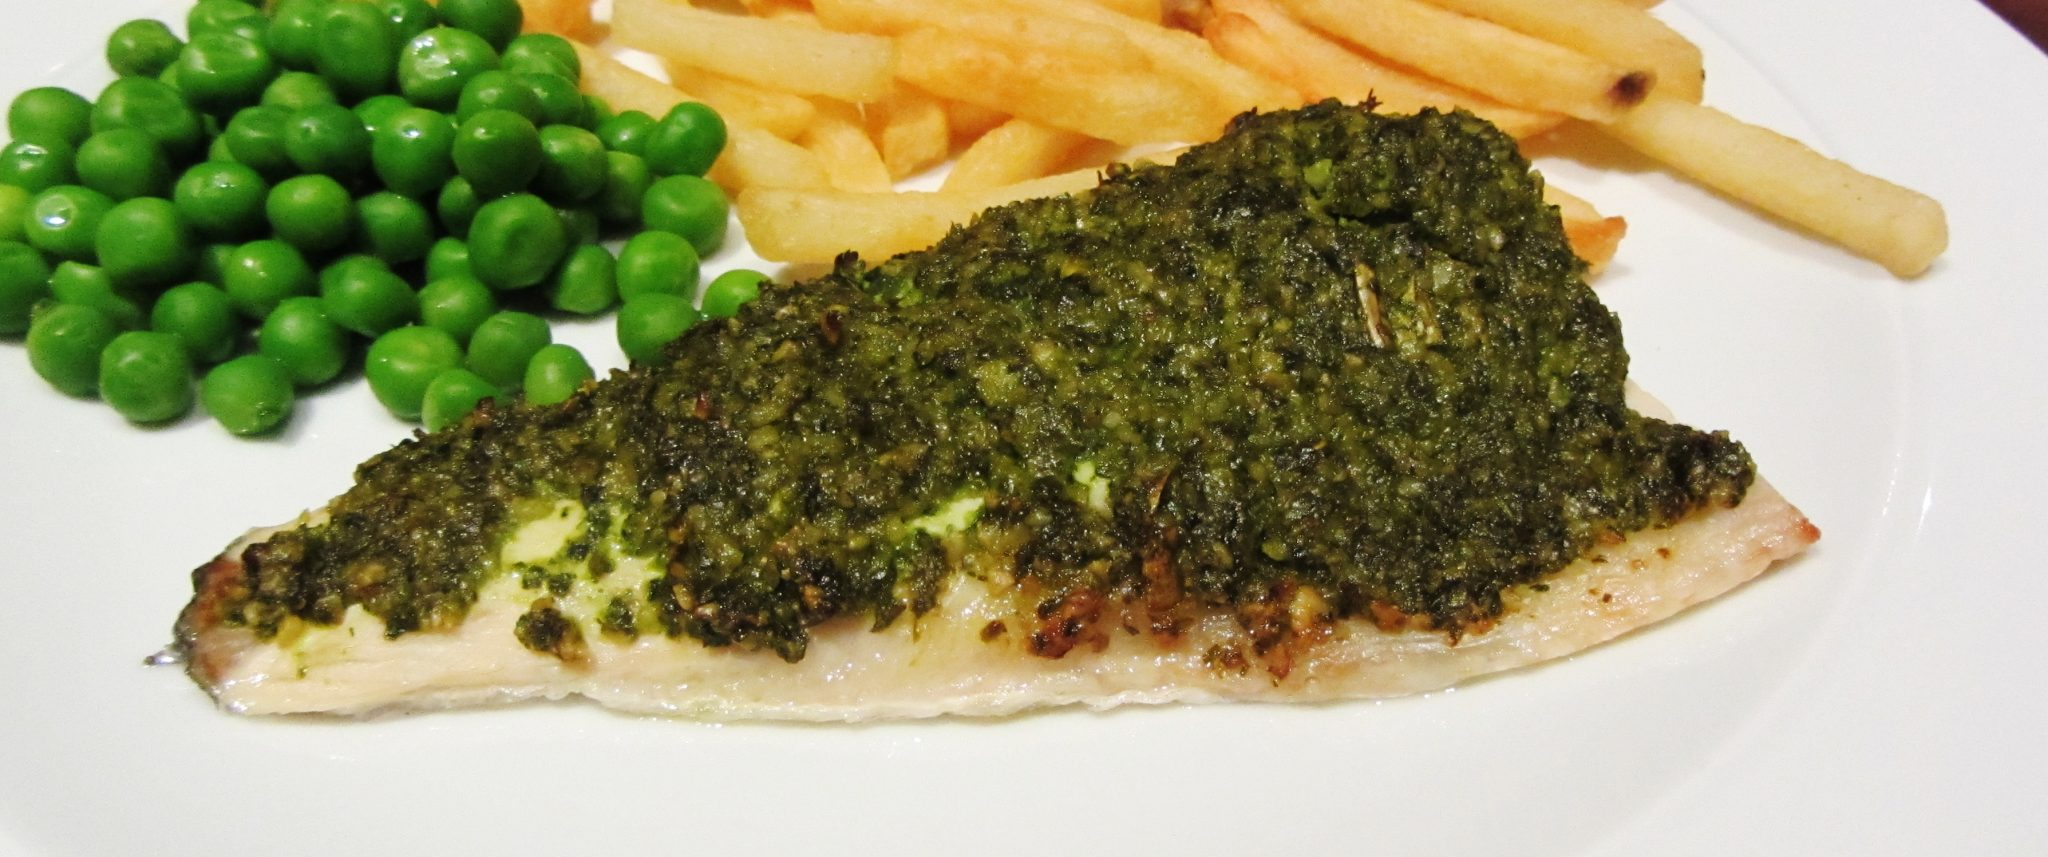 Grilled Sea bass with a pesto coating